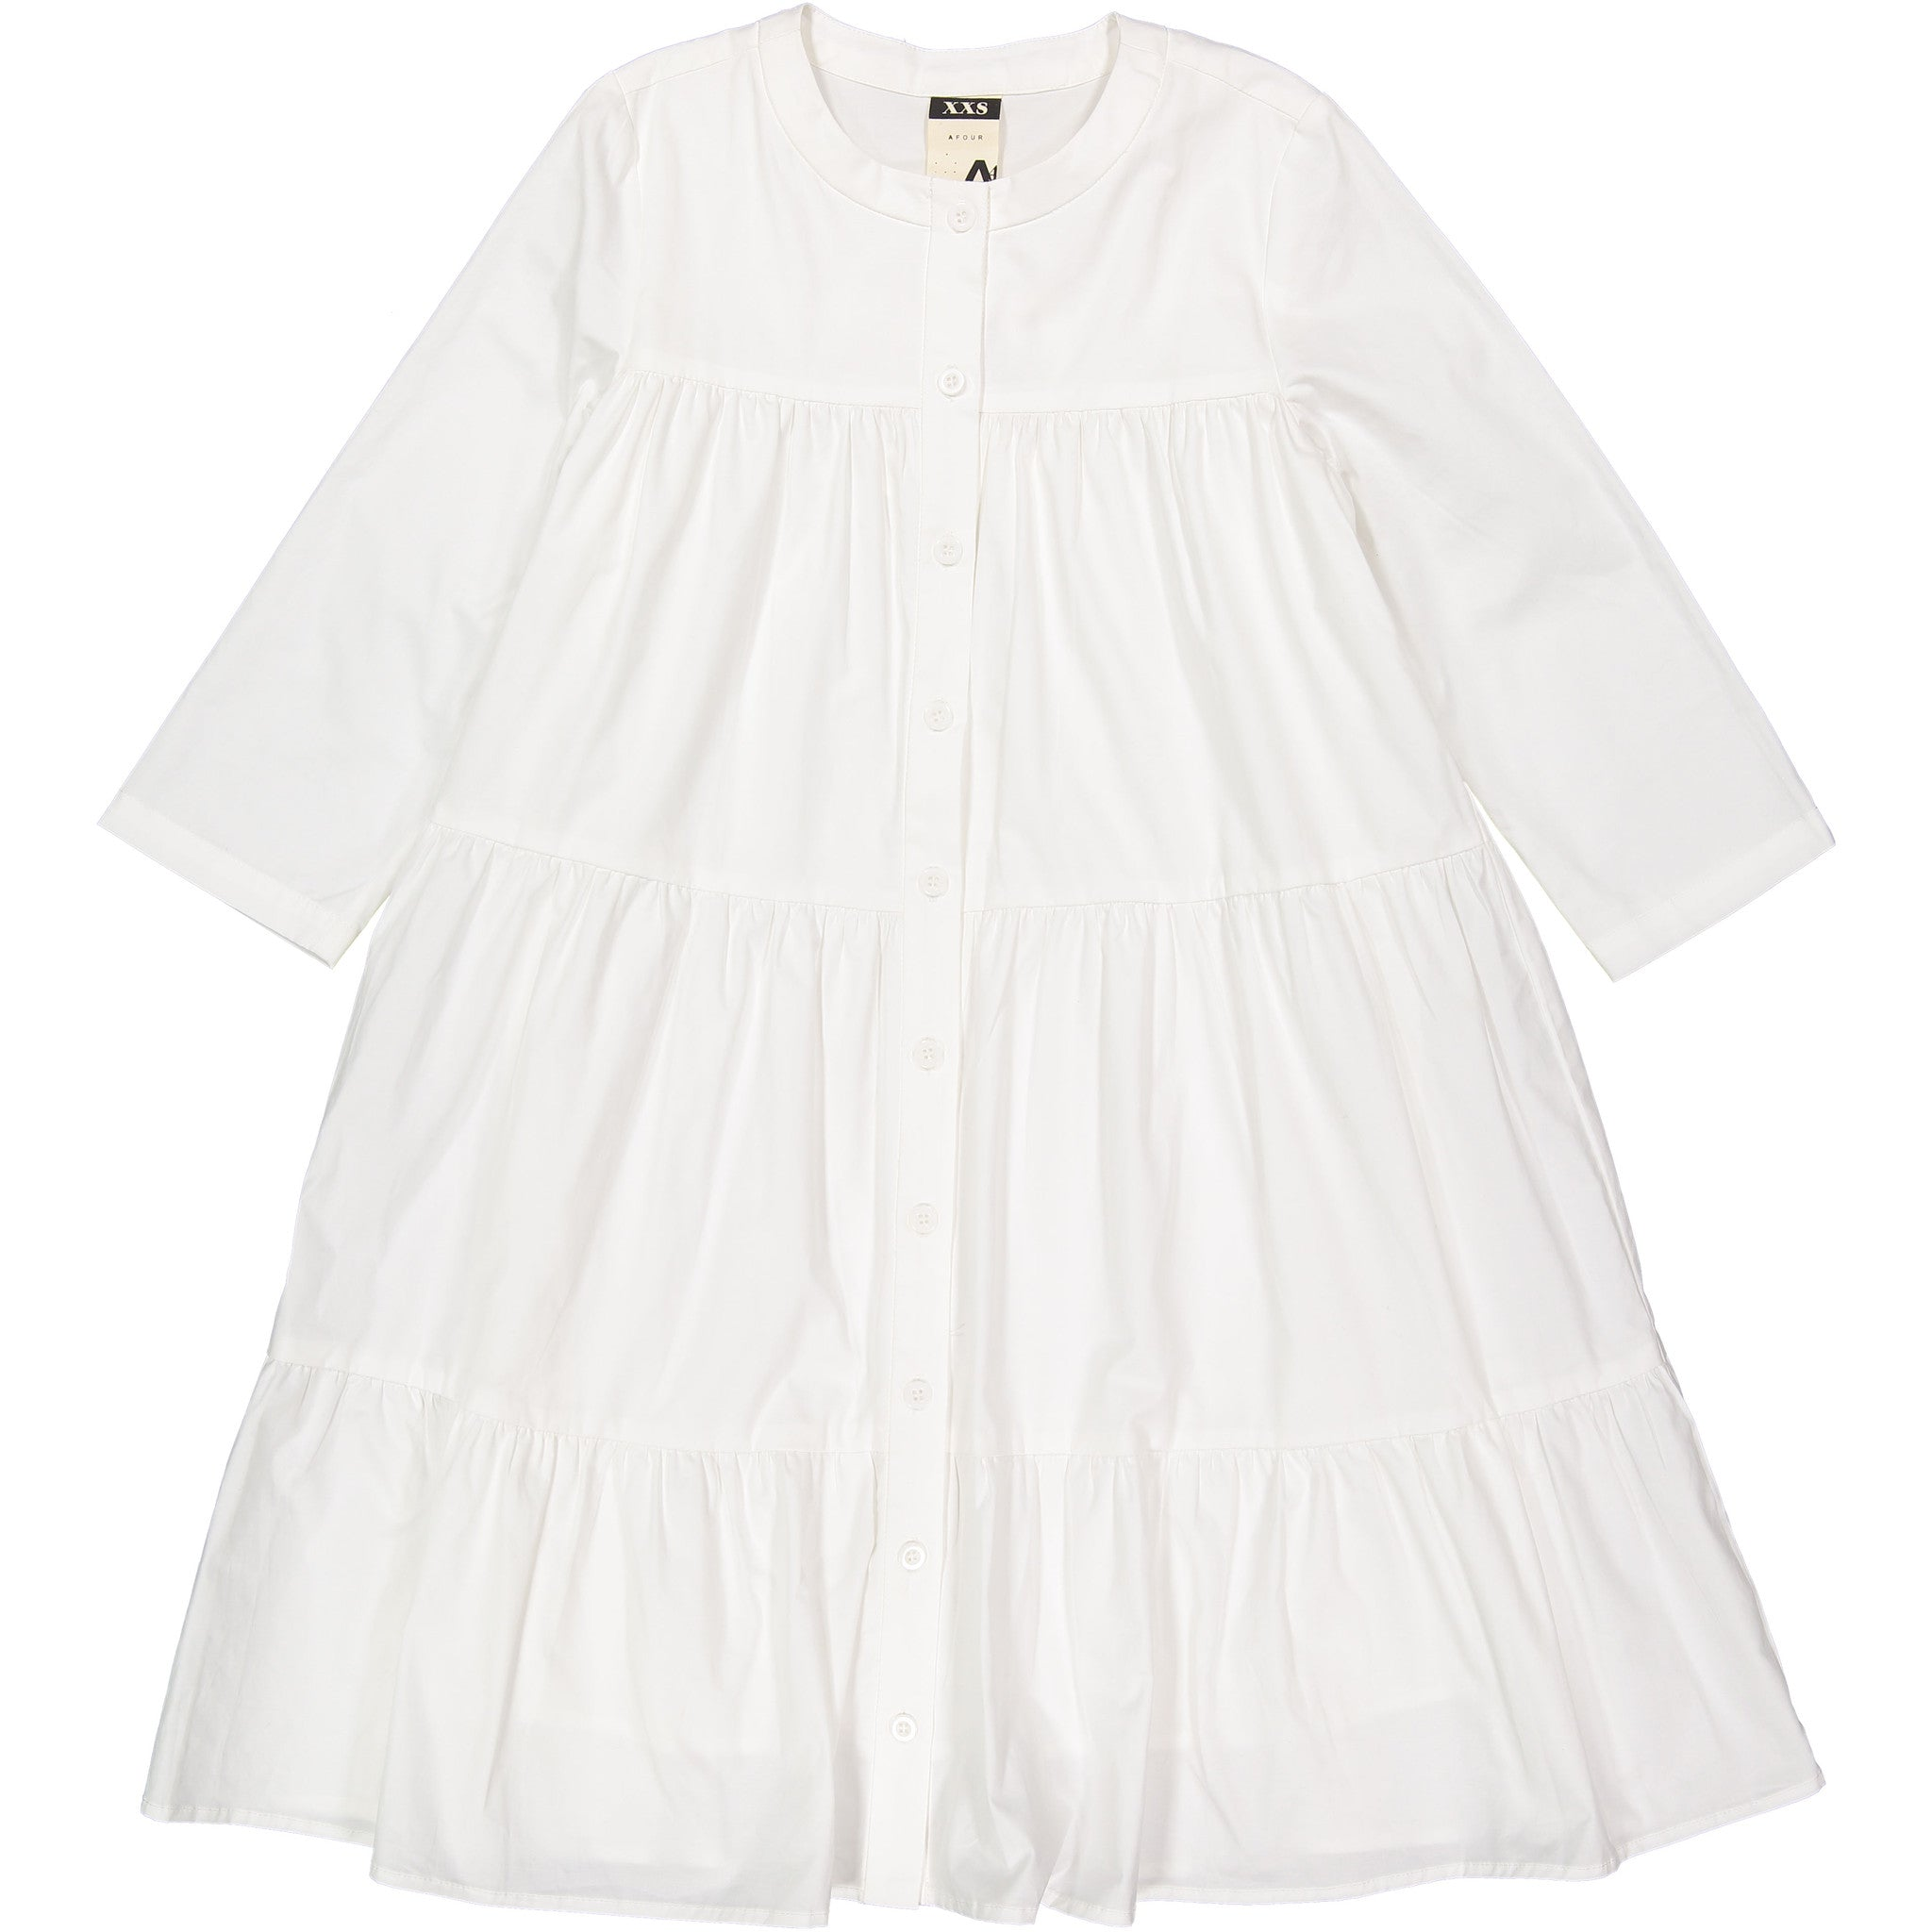 A4 White Tiered Long Sleeve Dress